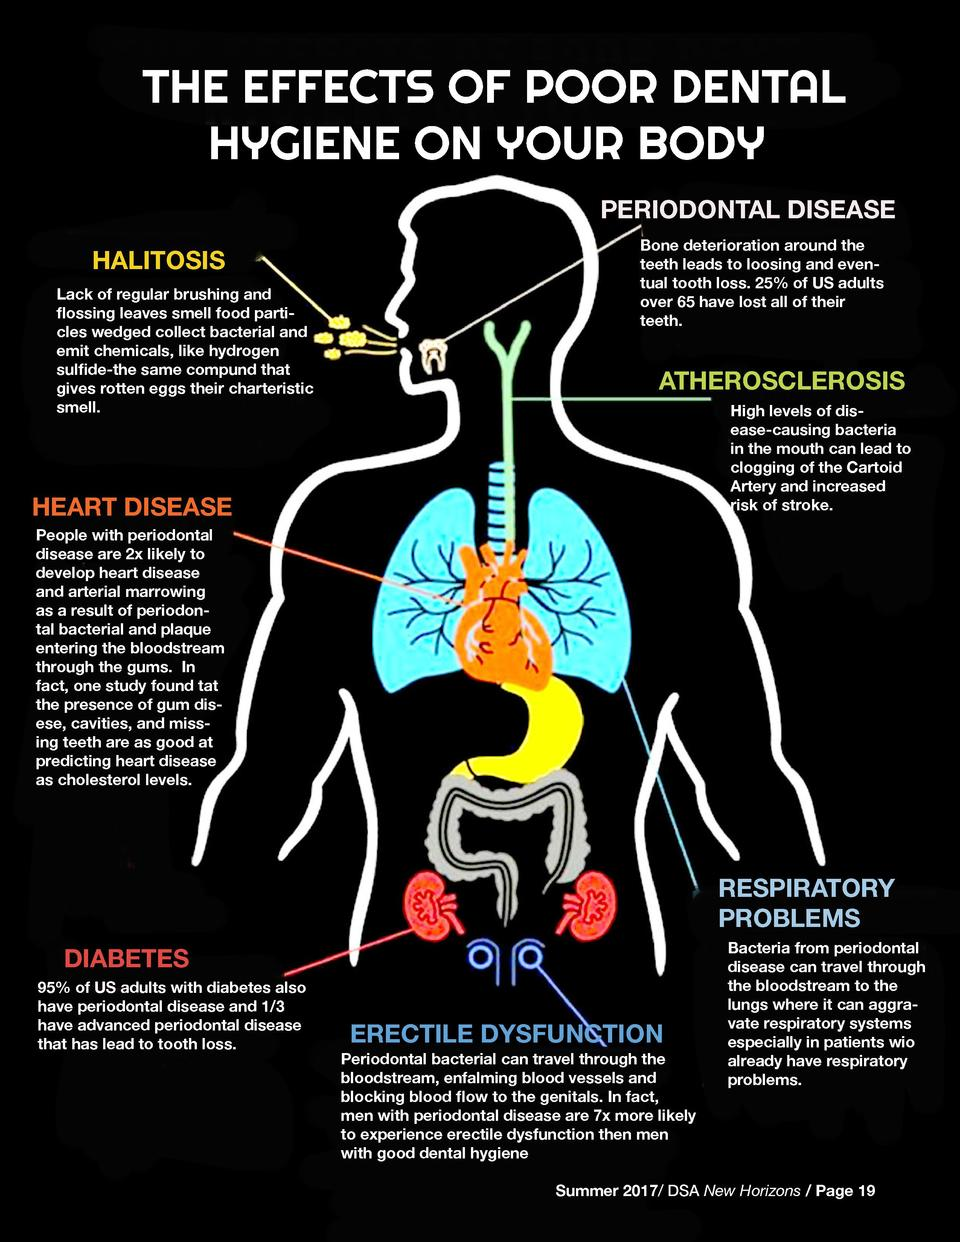 THE EFFECTS OF POOR DENTAL HYGIENE ON YOUR BODY PERIODONTAL DISEASE HALITOSIS Lack of regular brushing and flossing leaves...